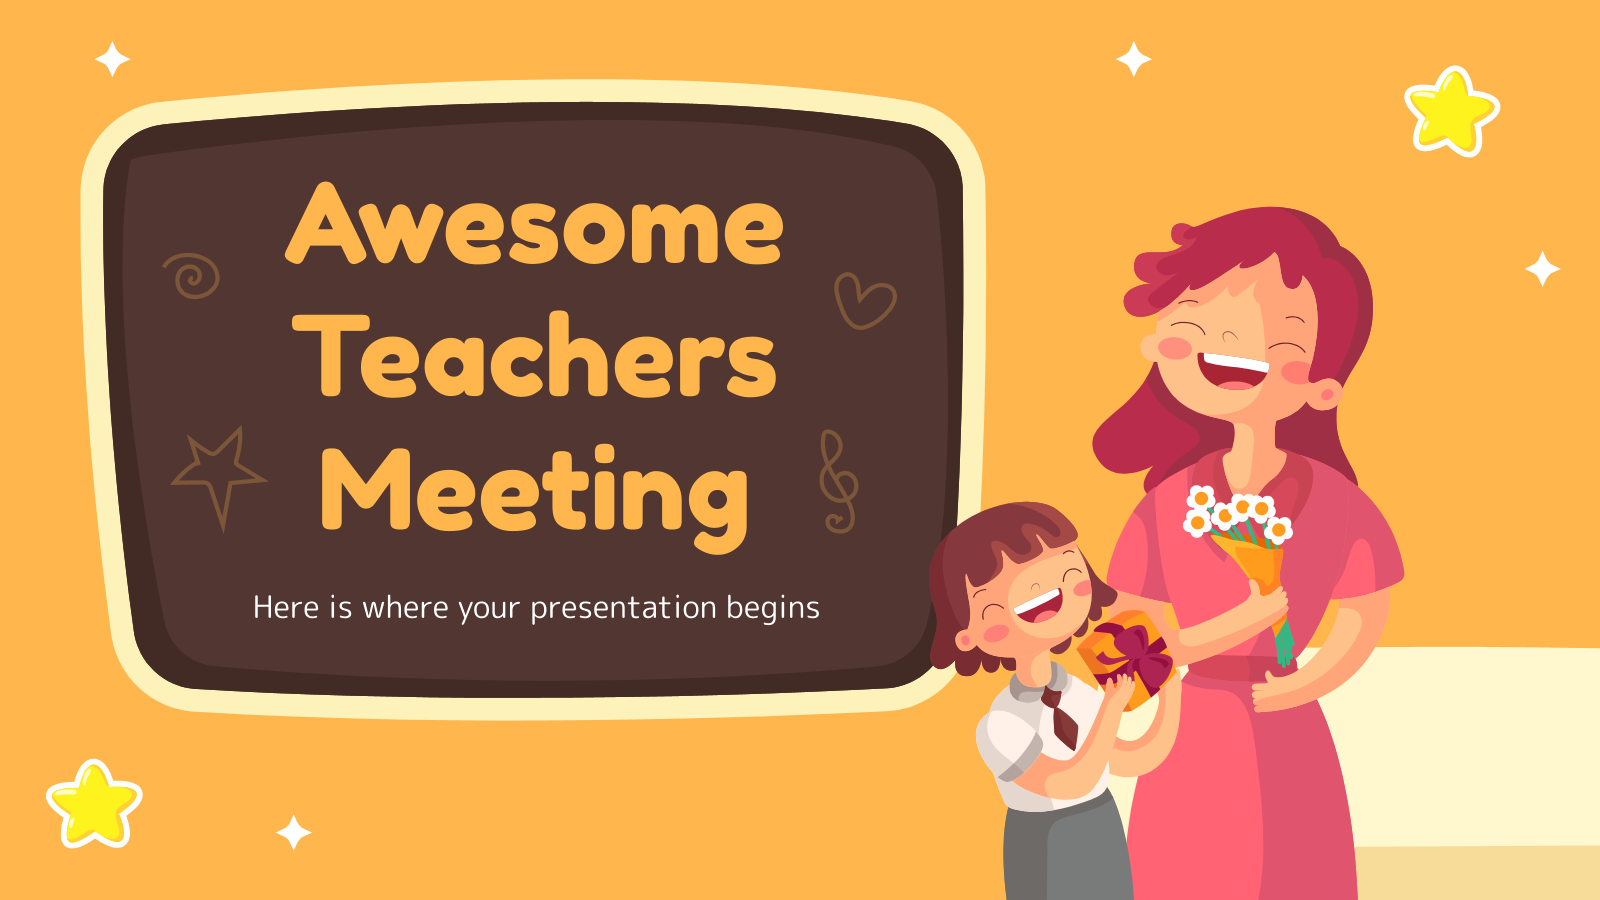 Awesome Teachers Meeting presentation template